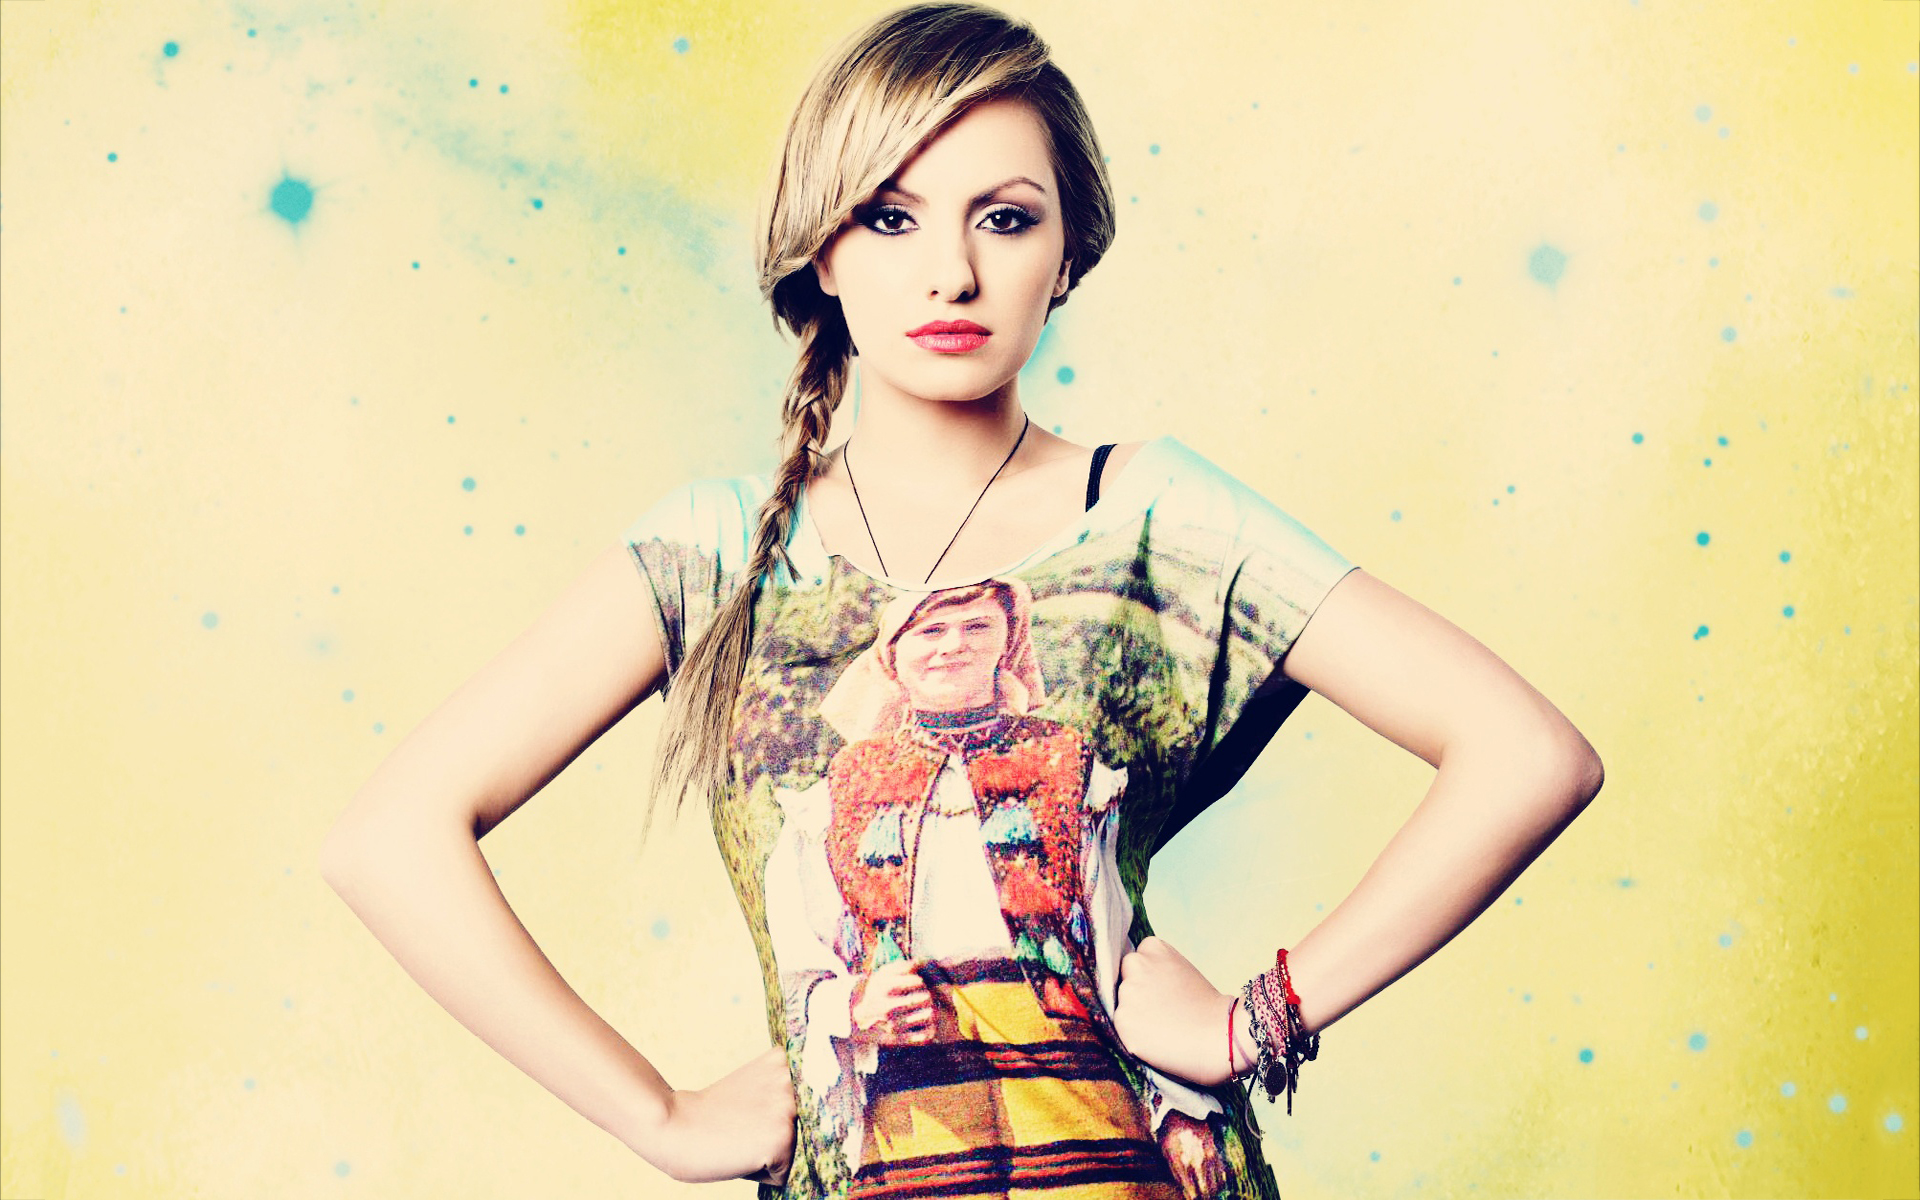 alexandra stan singer wallpaper 52158